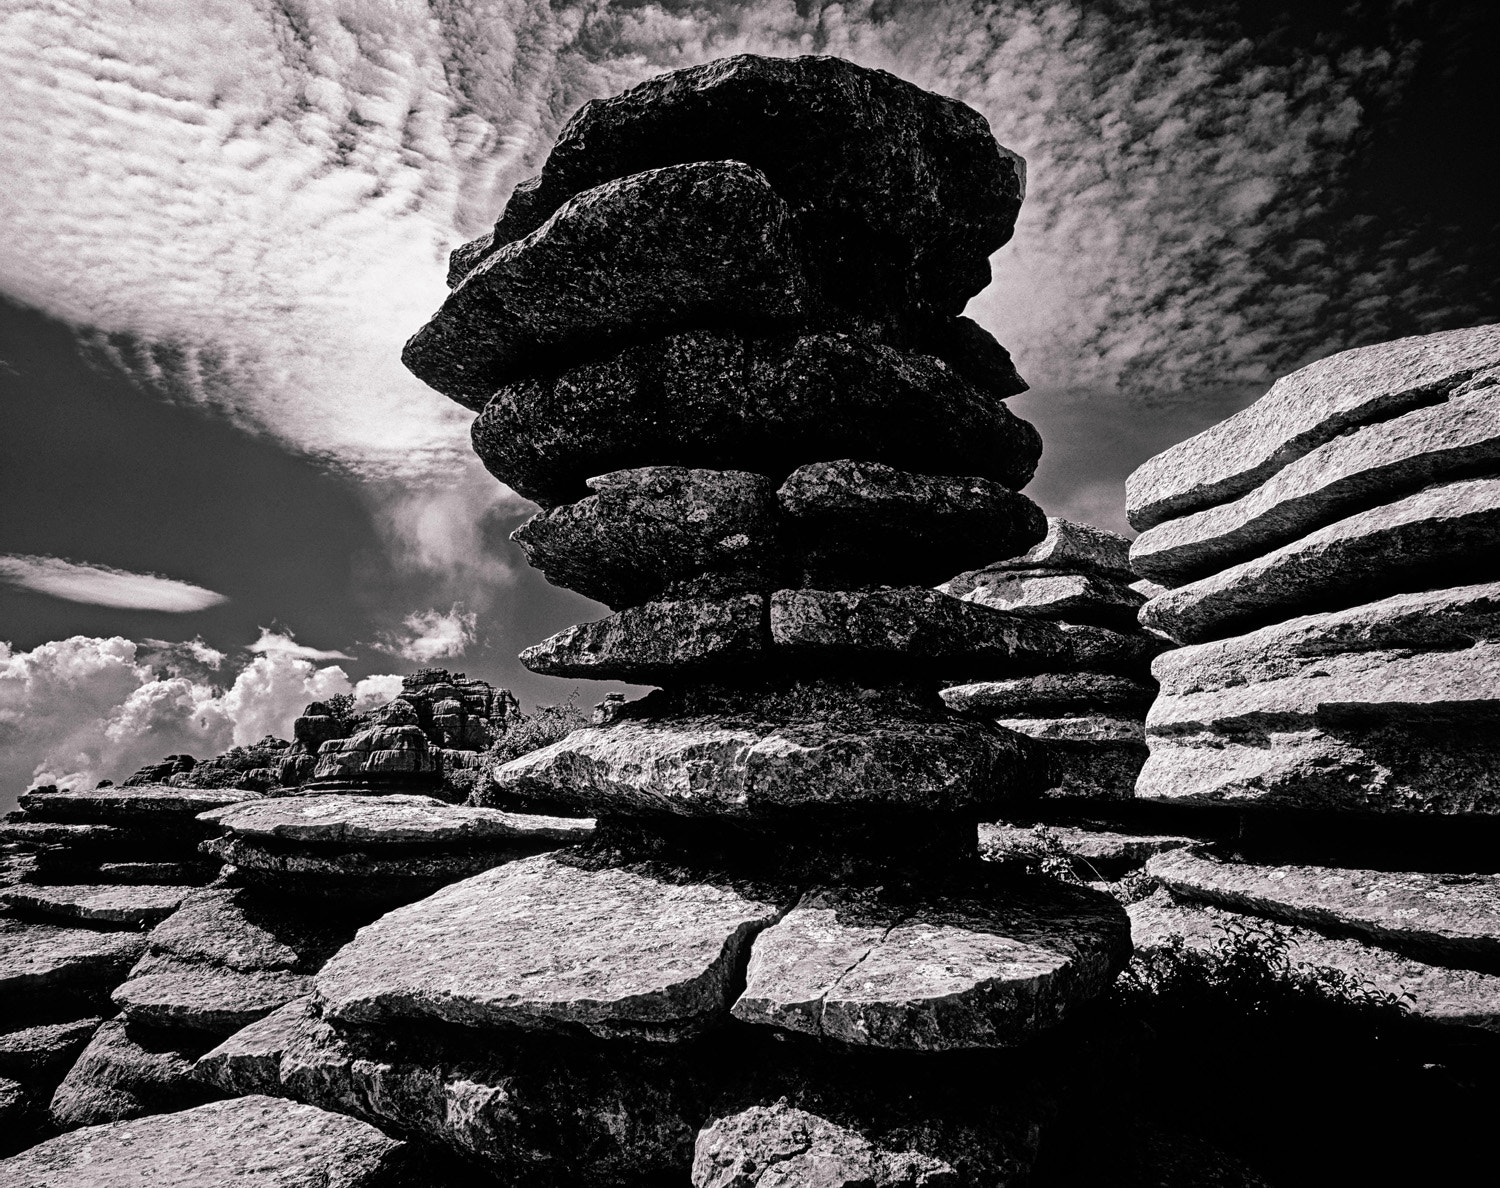 Photograph El Torcal national park near Antequera Andalucia Spain by Sean Burke on 500px